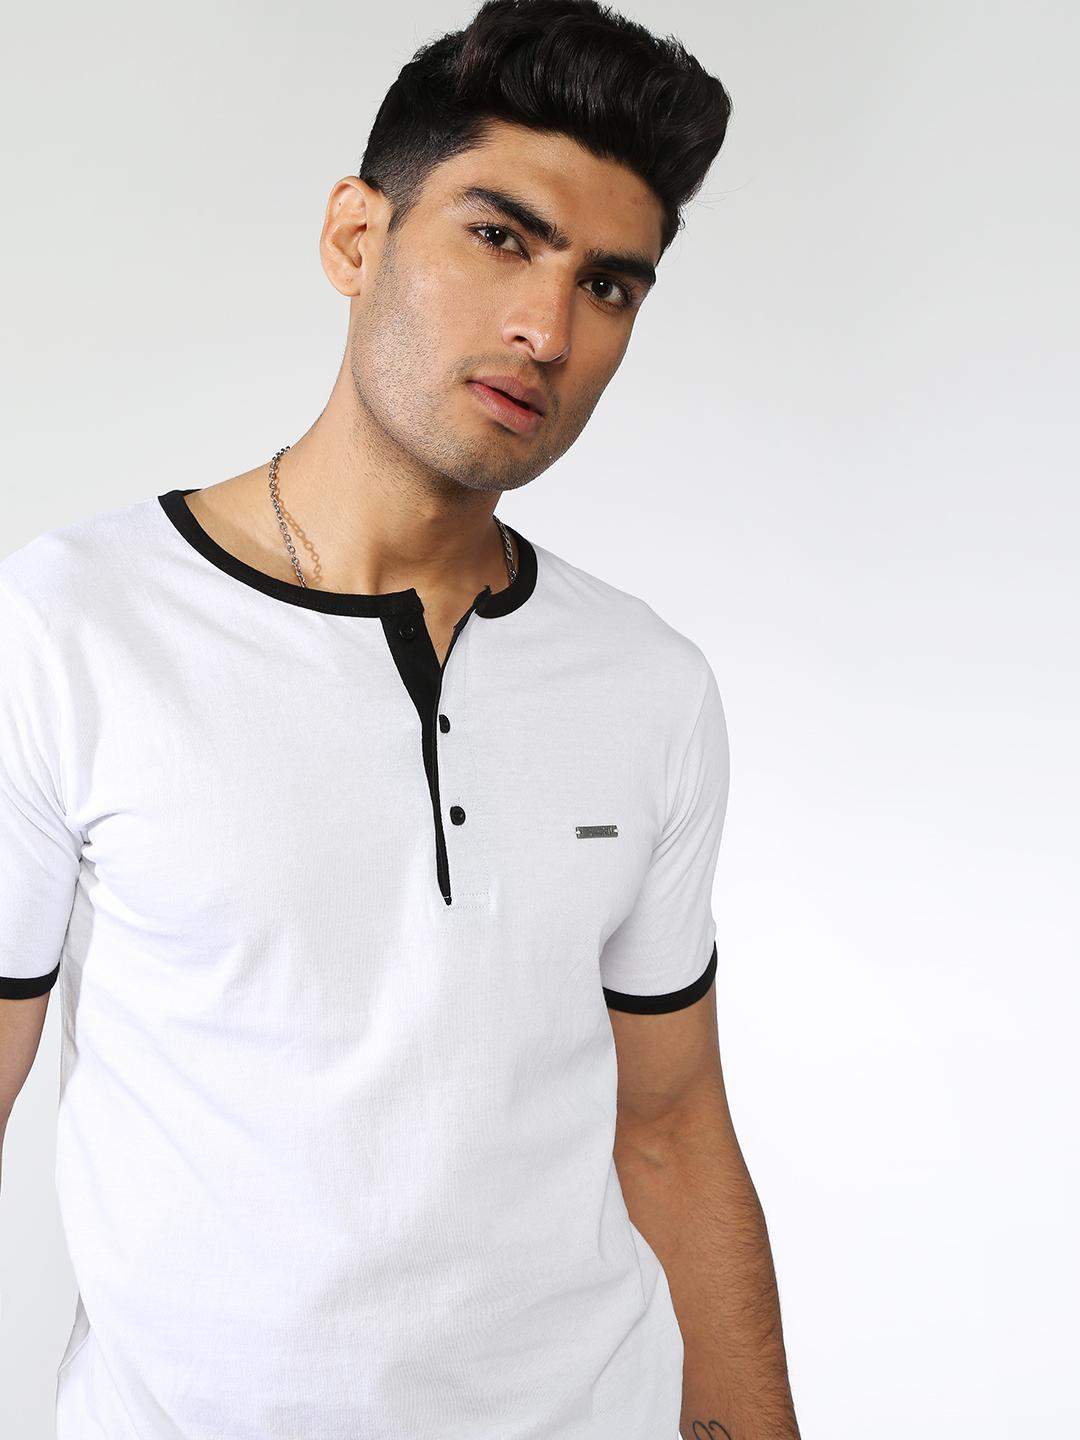 IMPACKT White Contrast Piping Round Neck T-Shirt 1